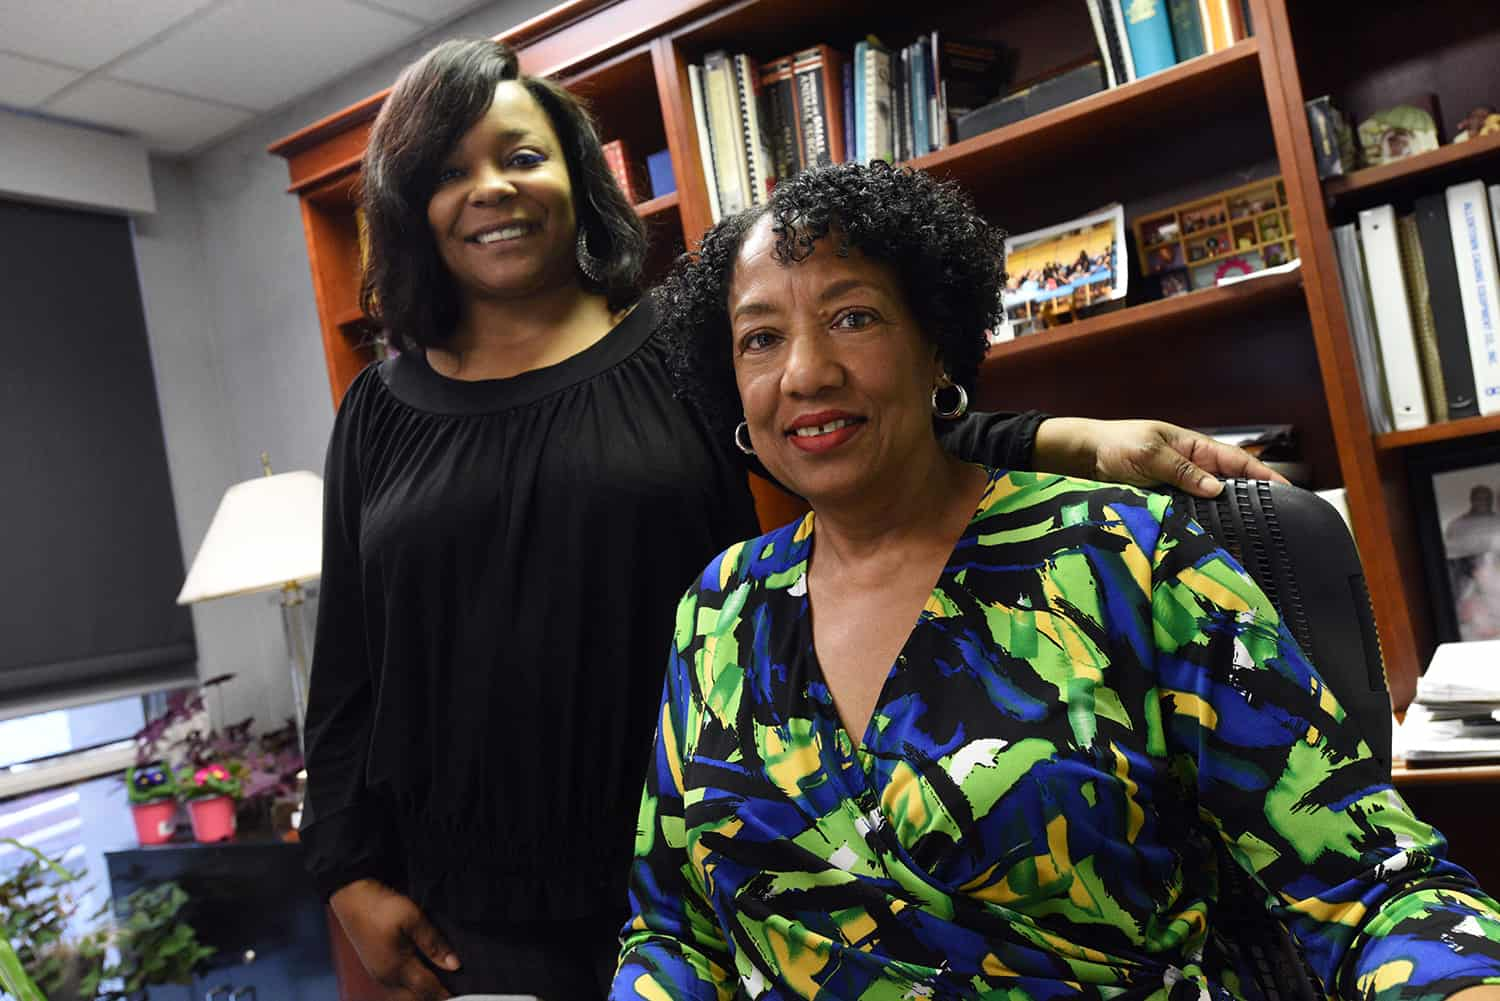 Marlo Thomas and Mildred Randolph, D..V.M., facilitate the Seeking Educational Equity and Diversity (SEED) Project, a program that uses group discussions to lead change within communities through personal growth, professional development and social justice.